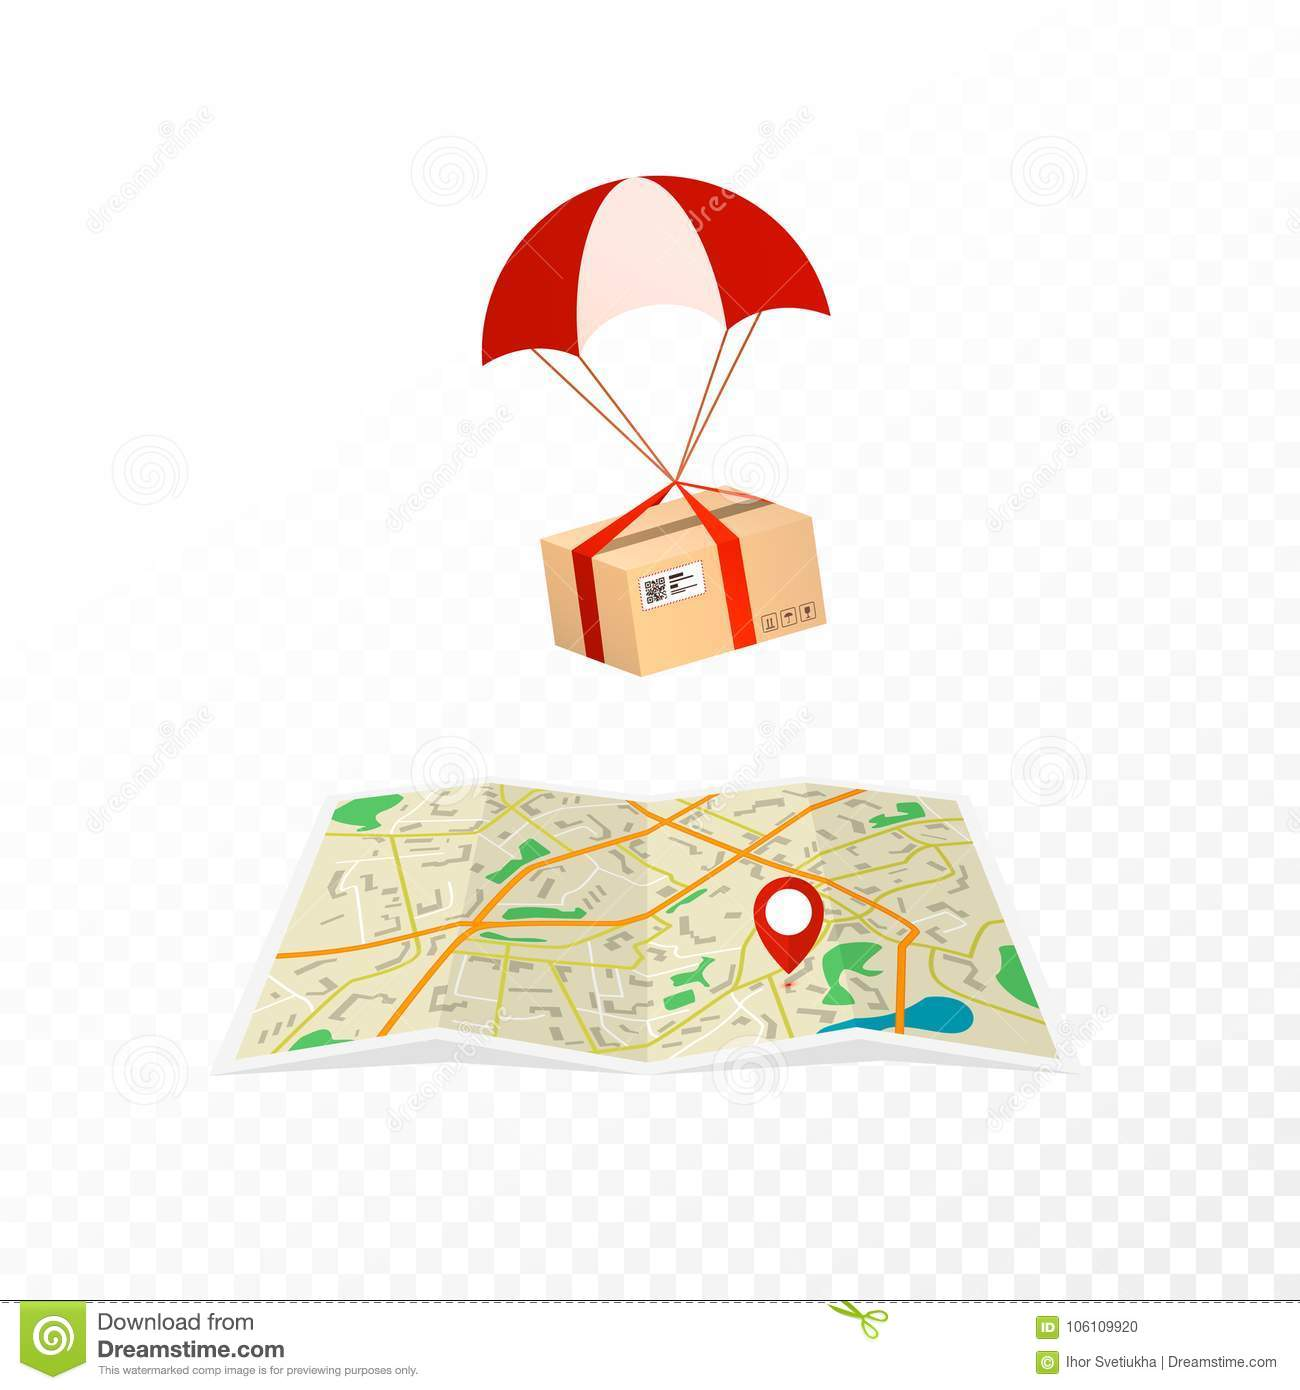 Concept courier service. Logistic and delivery packages. Package flies to the destination on the map. Flat vector illustration iso